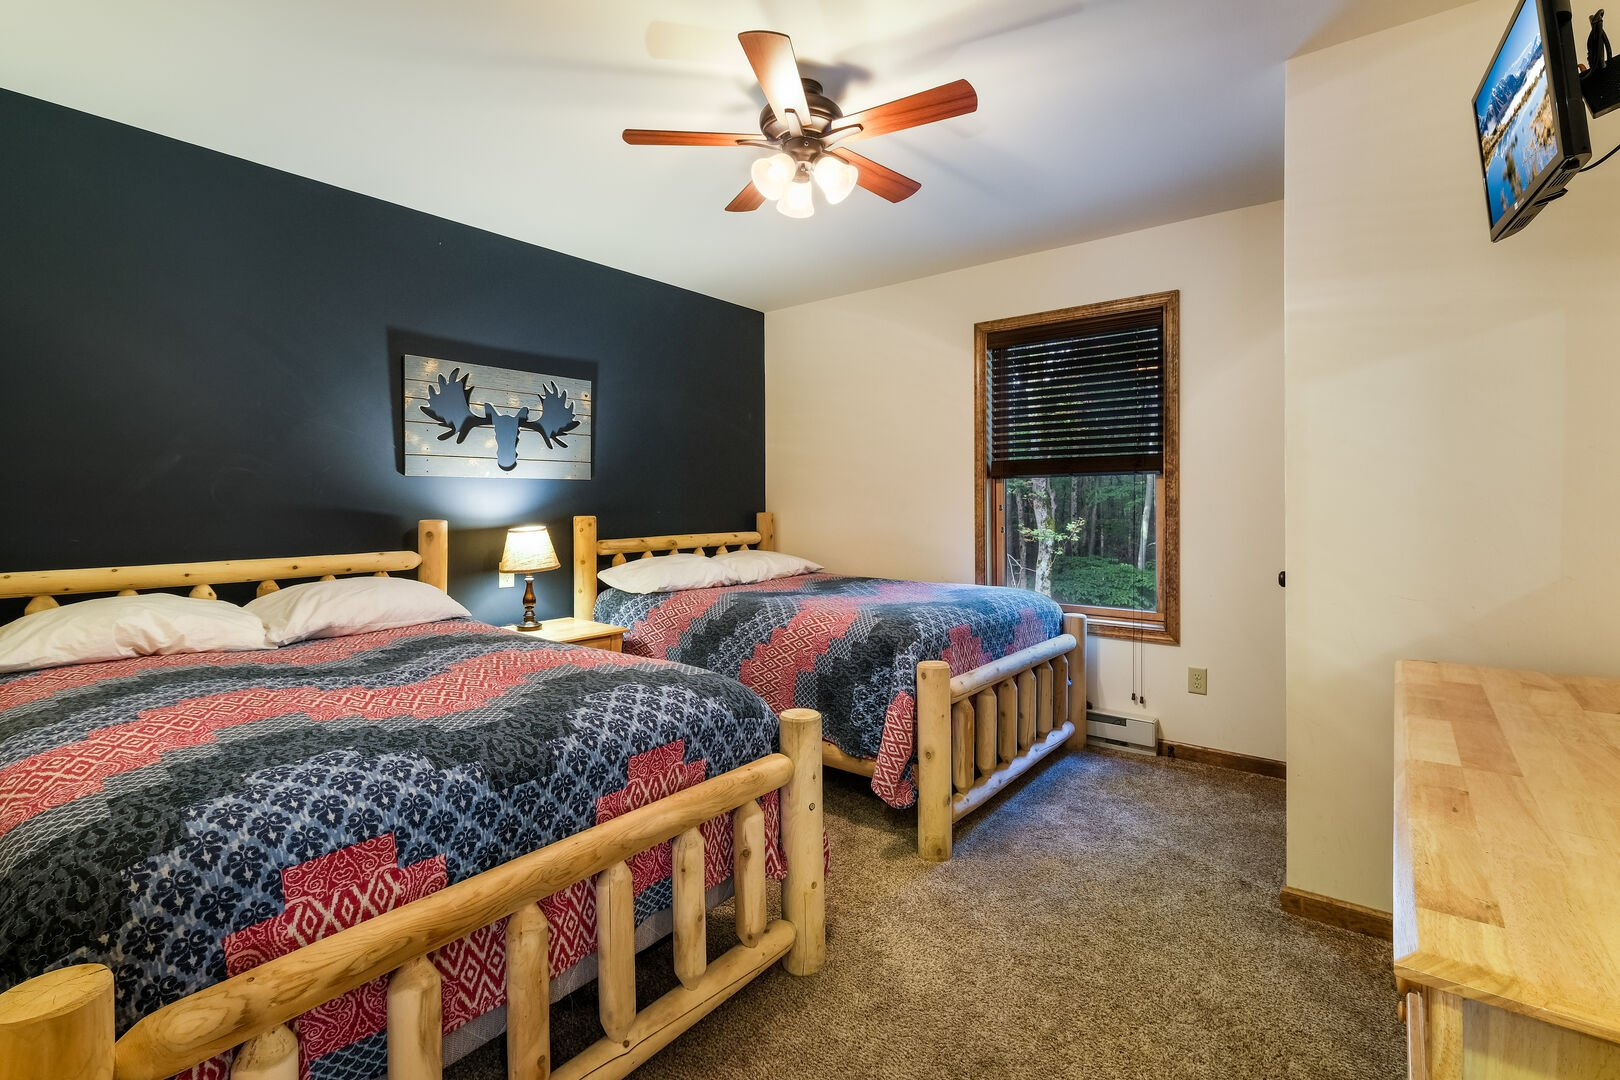 Two side-by-side beds, with a nightstand on either side, and a moose painting over them. Dresser and TV at foot of beds.